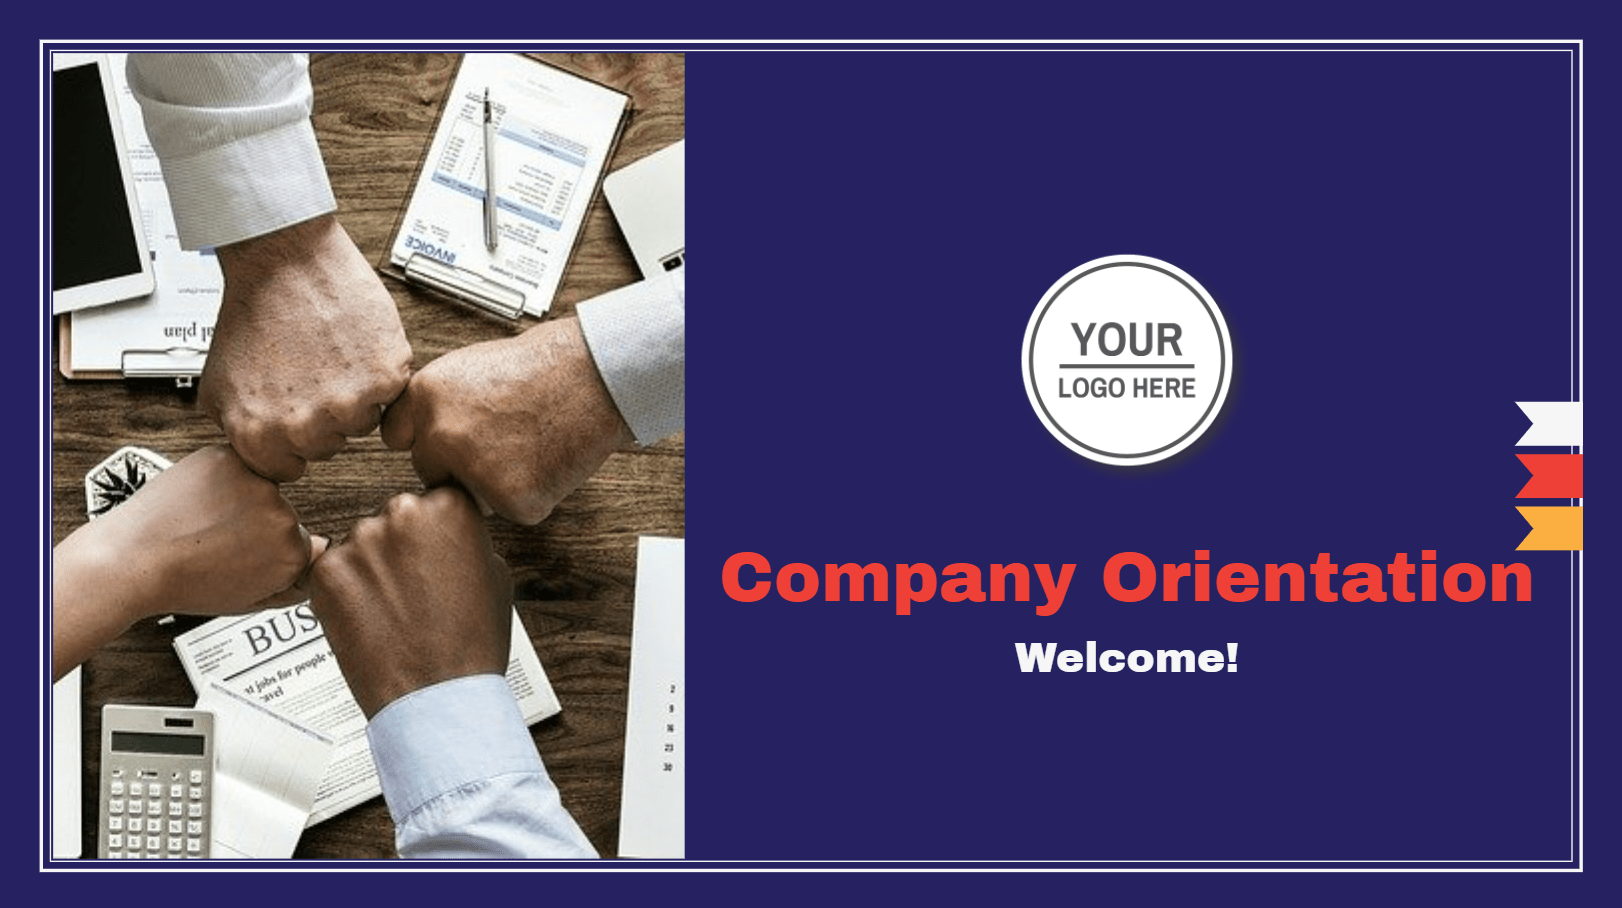 The perfect template to use during company orientation conferences. Suitable for kickstart the conference with the company background, team, and company policies. This template can be used as a presentation, or as a summary document. It is fully customizable according to the branding.